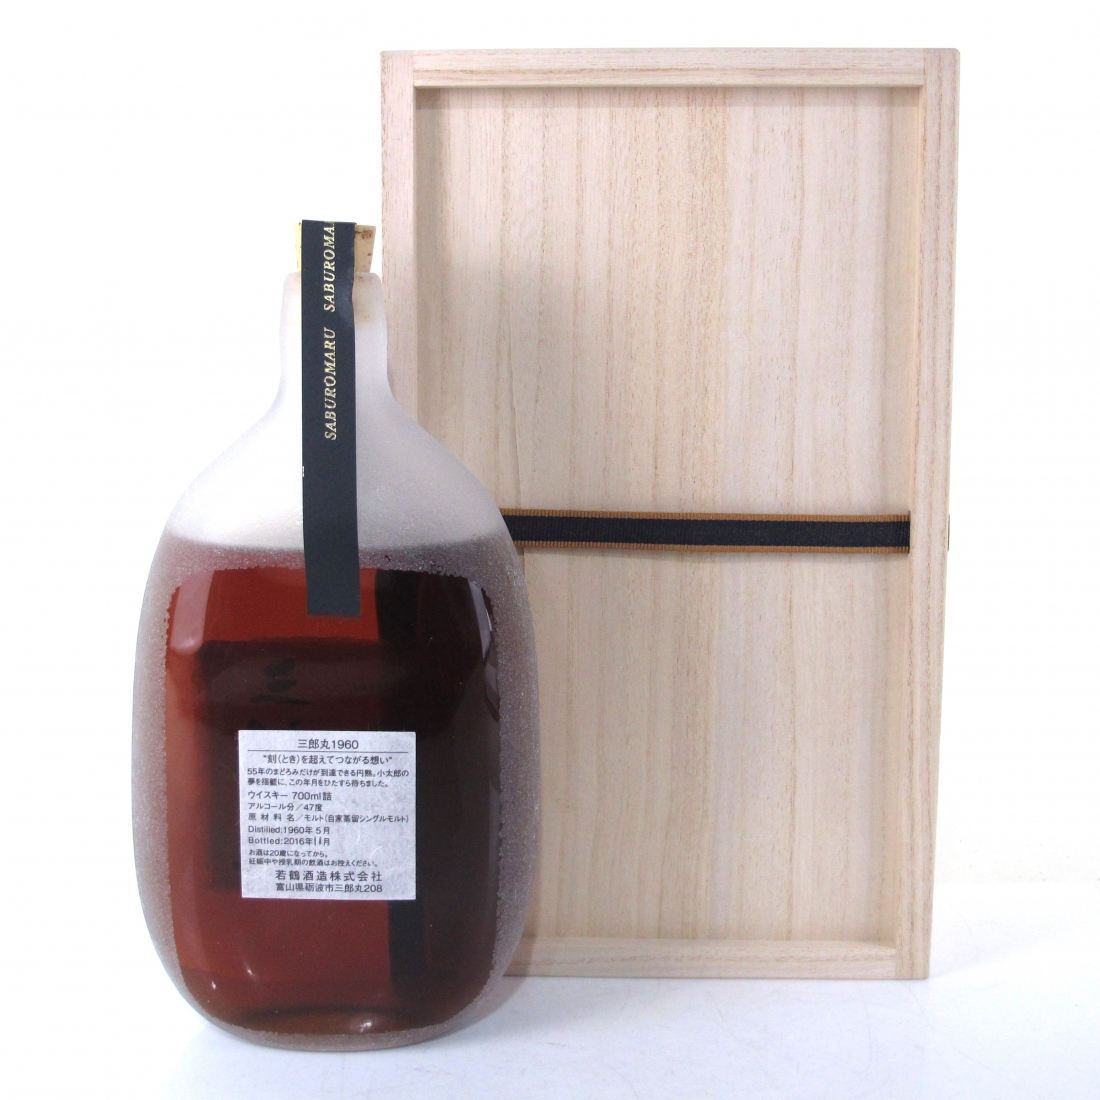 Saburomaru 1960 55 Year Old Japanese Single Malt